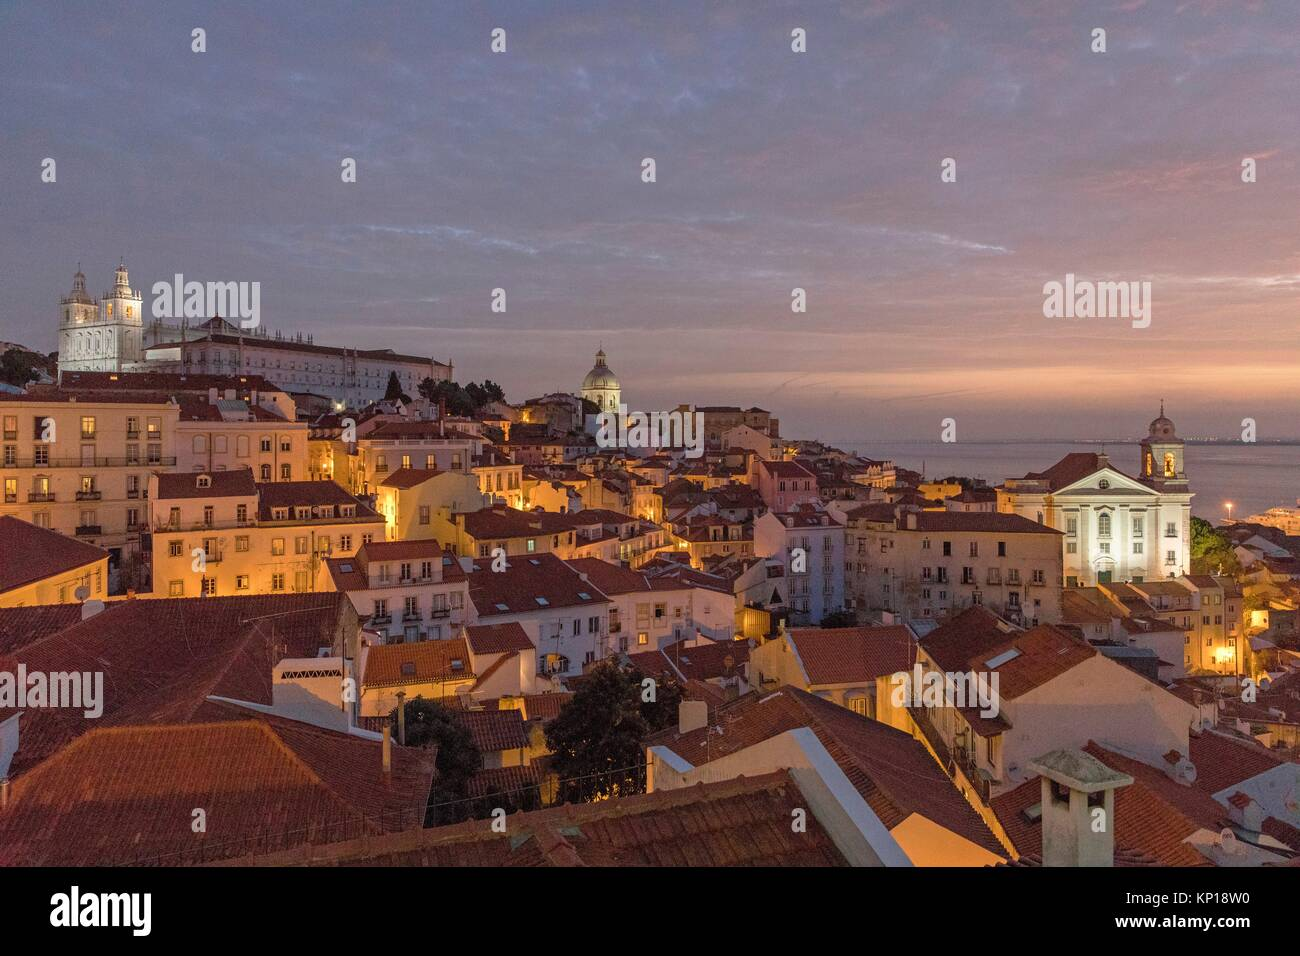 Alfama district night Santa Lucia mirador Lisbon Portugal. - Stock Image